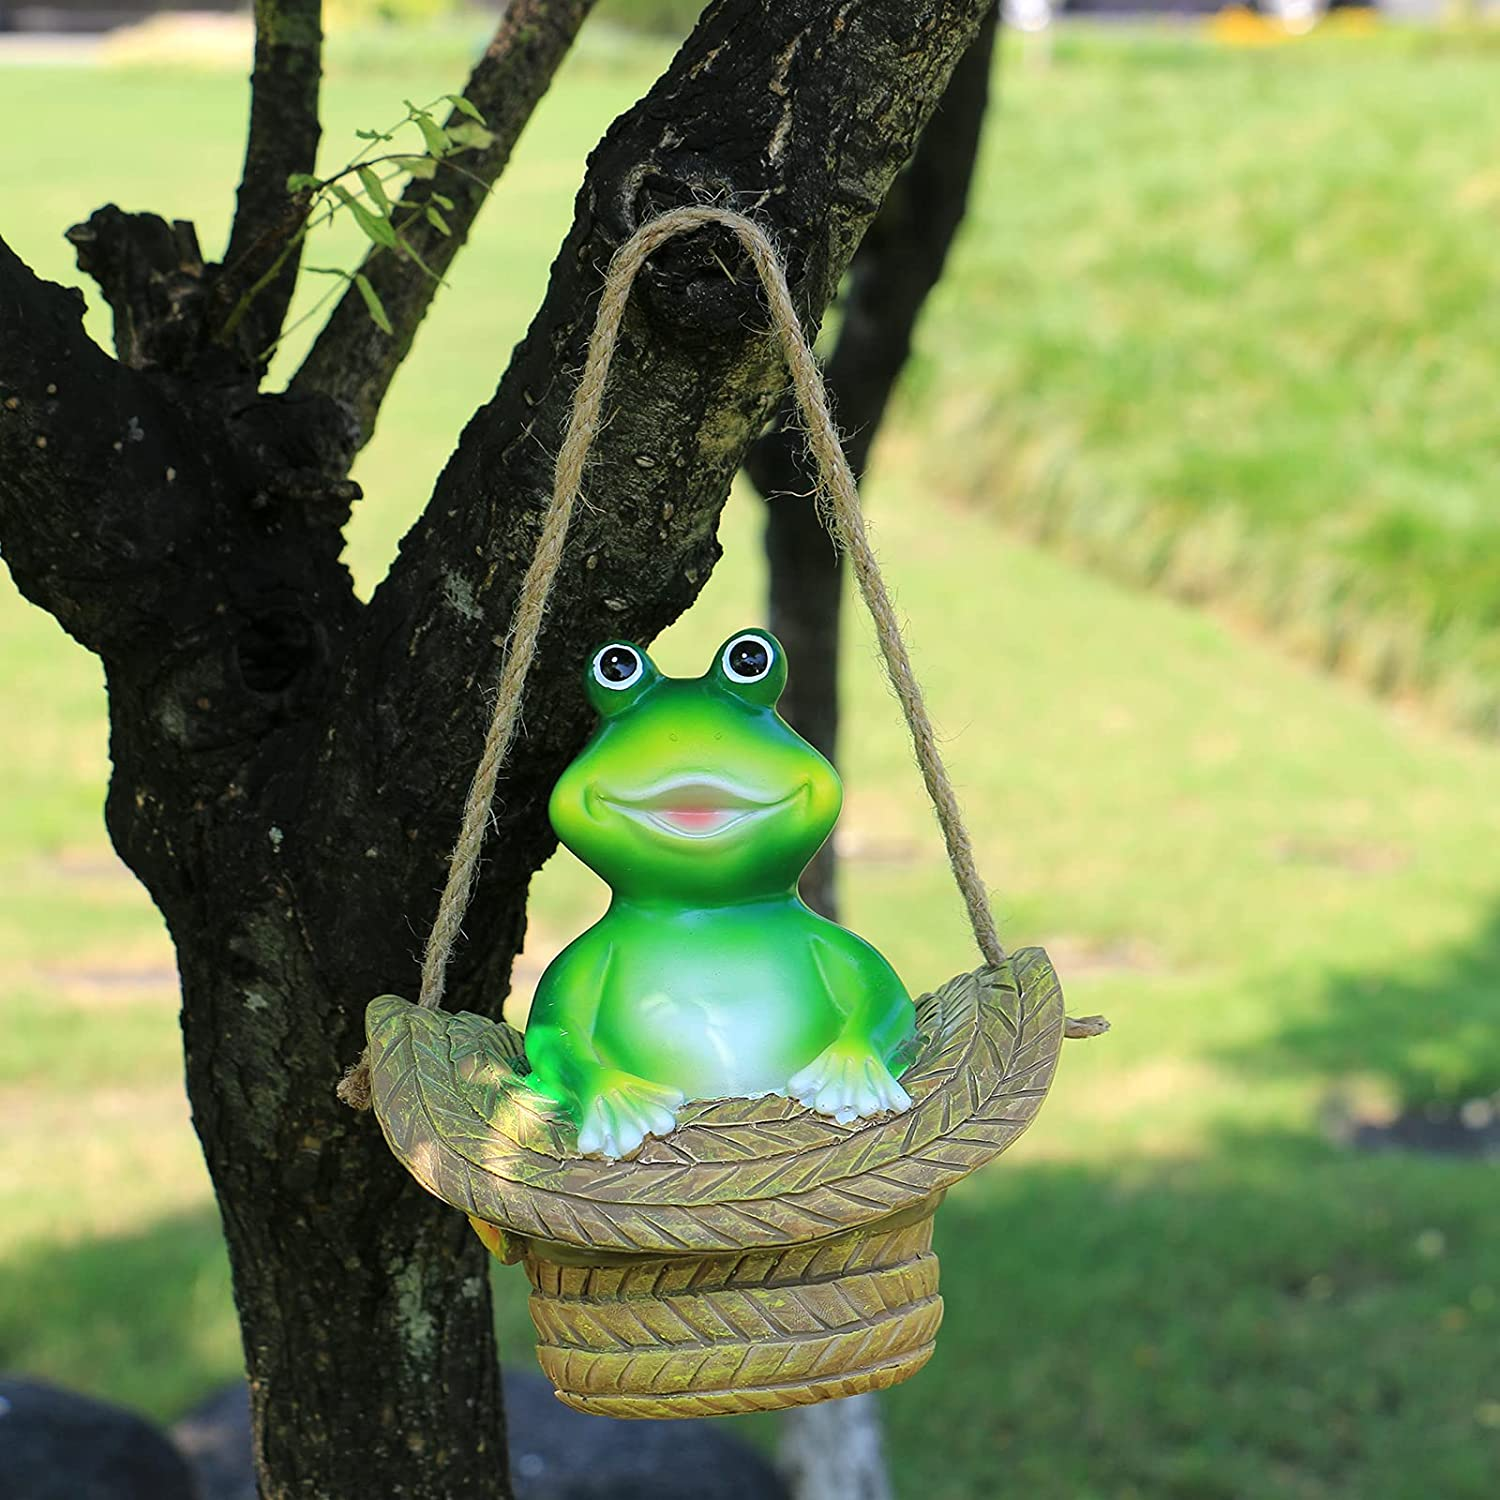 Garden Statues Outdoor Decor Frog Garden Tree Faces Decor Hanging Gnomes for Outside Tree Huggers Decorations Sculptures Figurines Yard Ornament Patio Indoor Wall Animal Clearance Funny